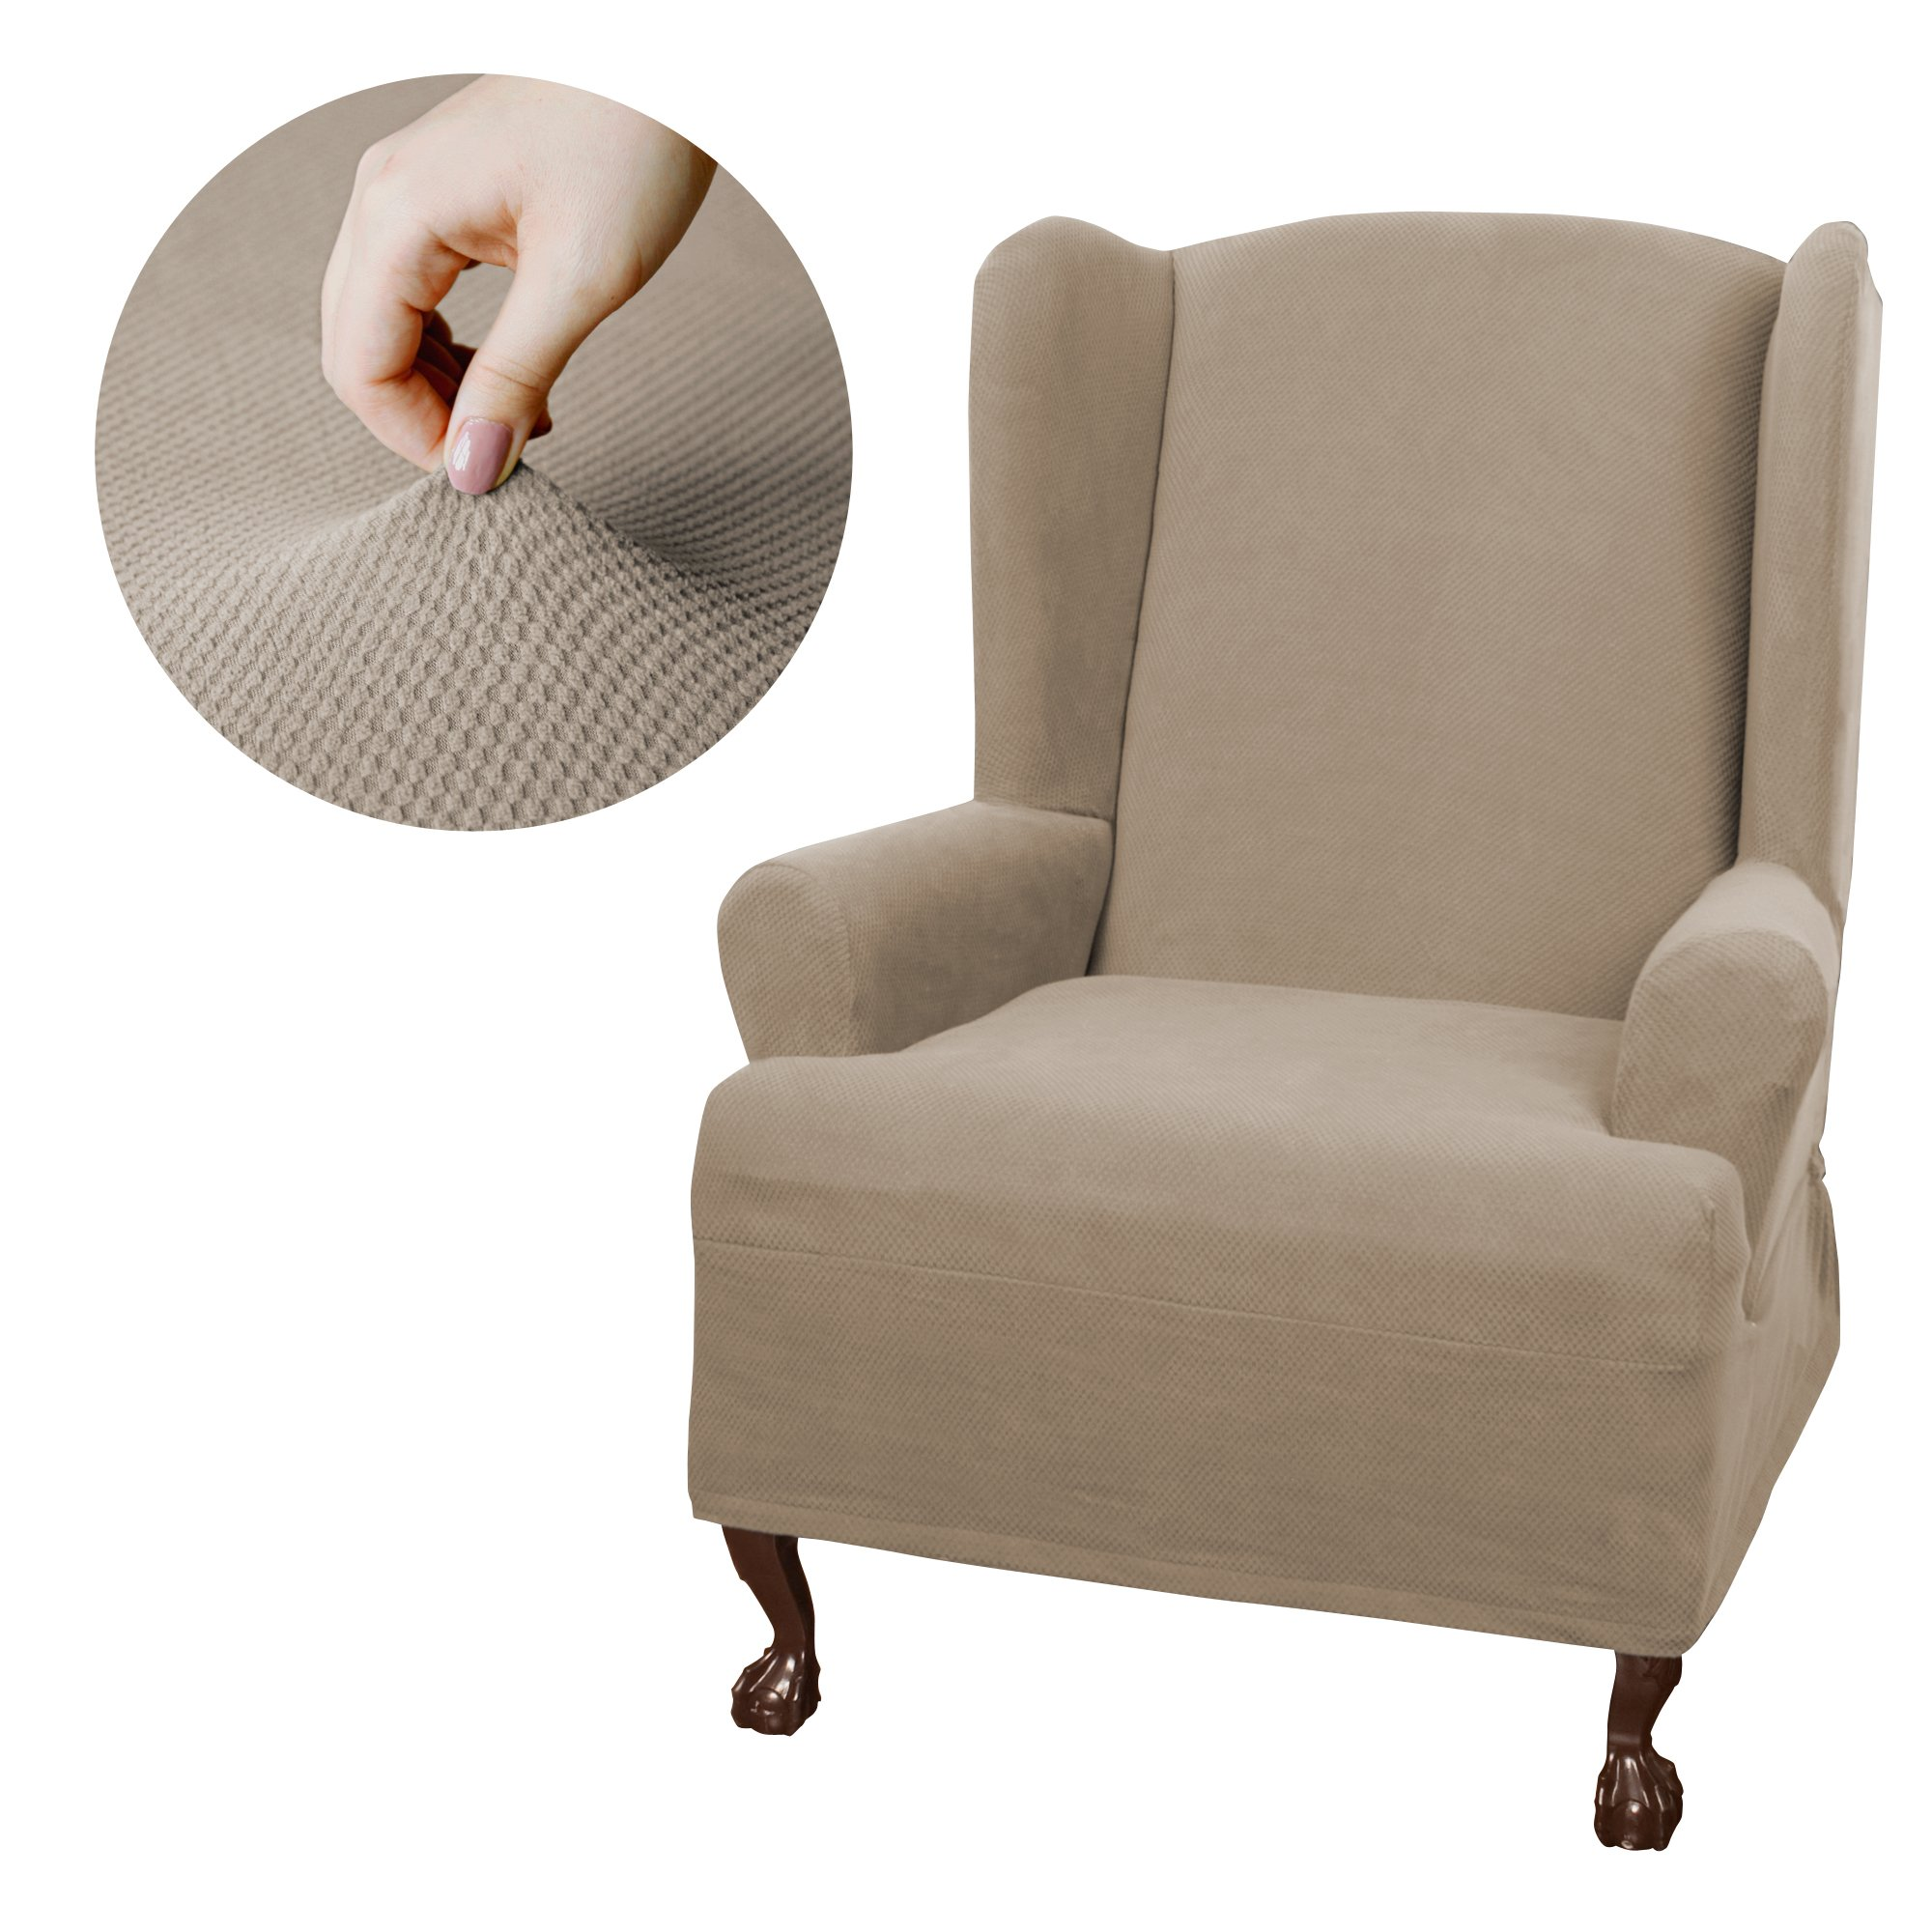 MAYTEX Pixel Stretch 1-Piece Wing Back Arm Chair Furniture Cover/Slipcover, Sand